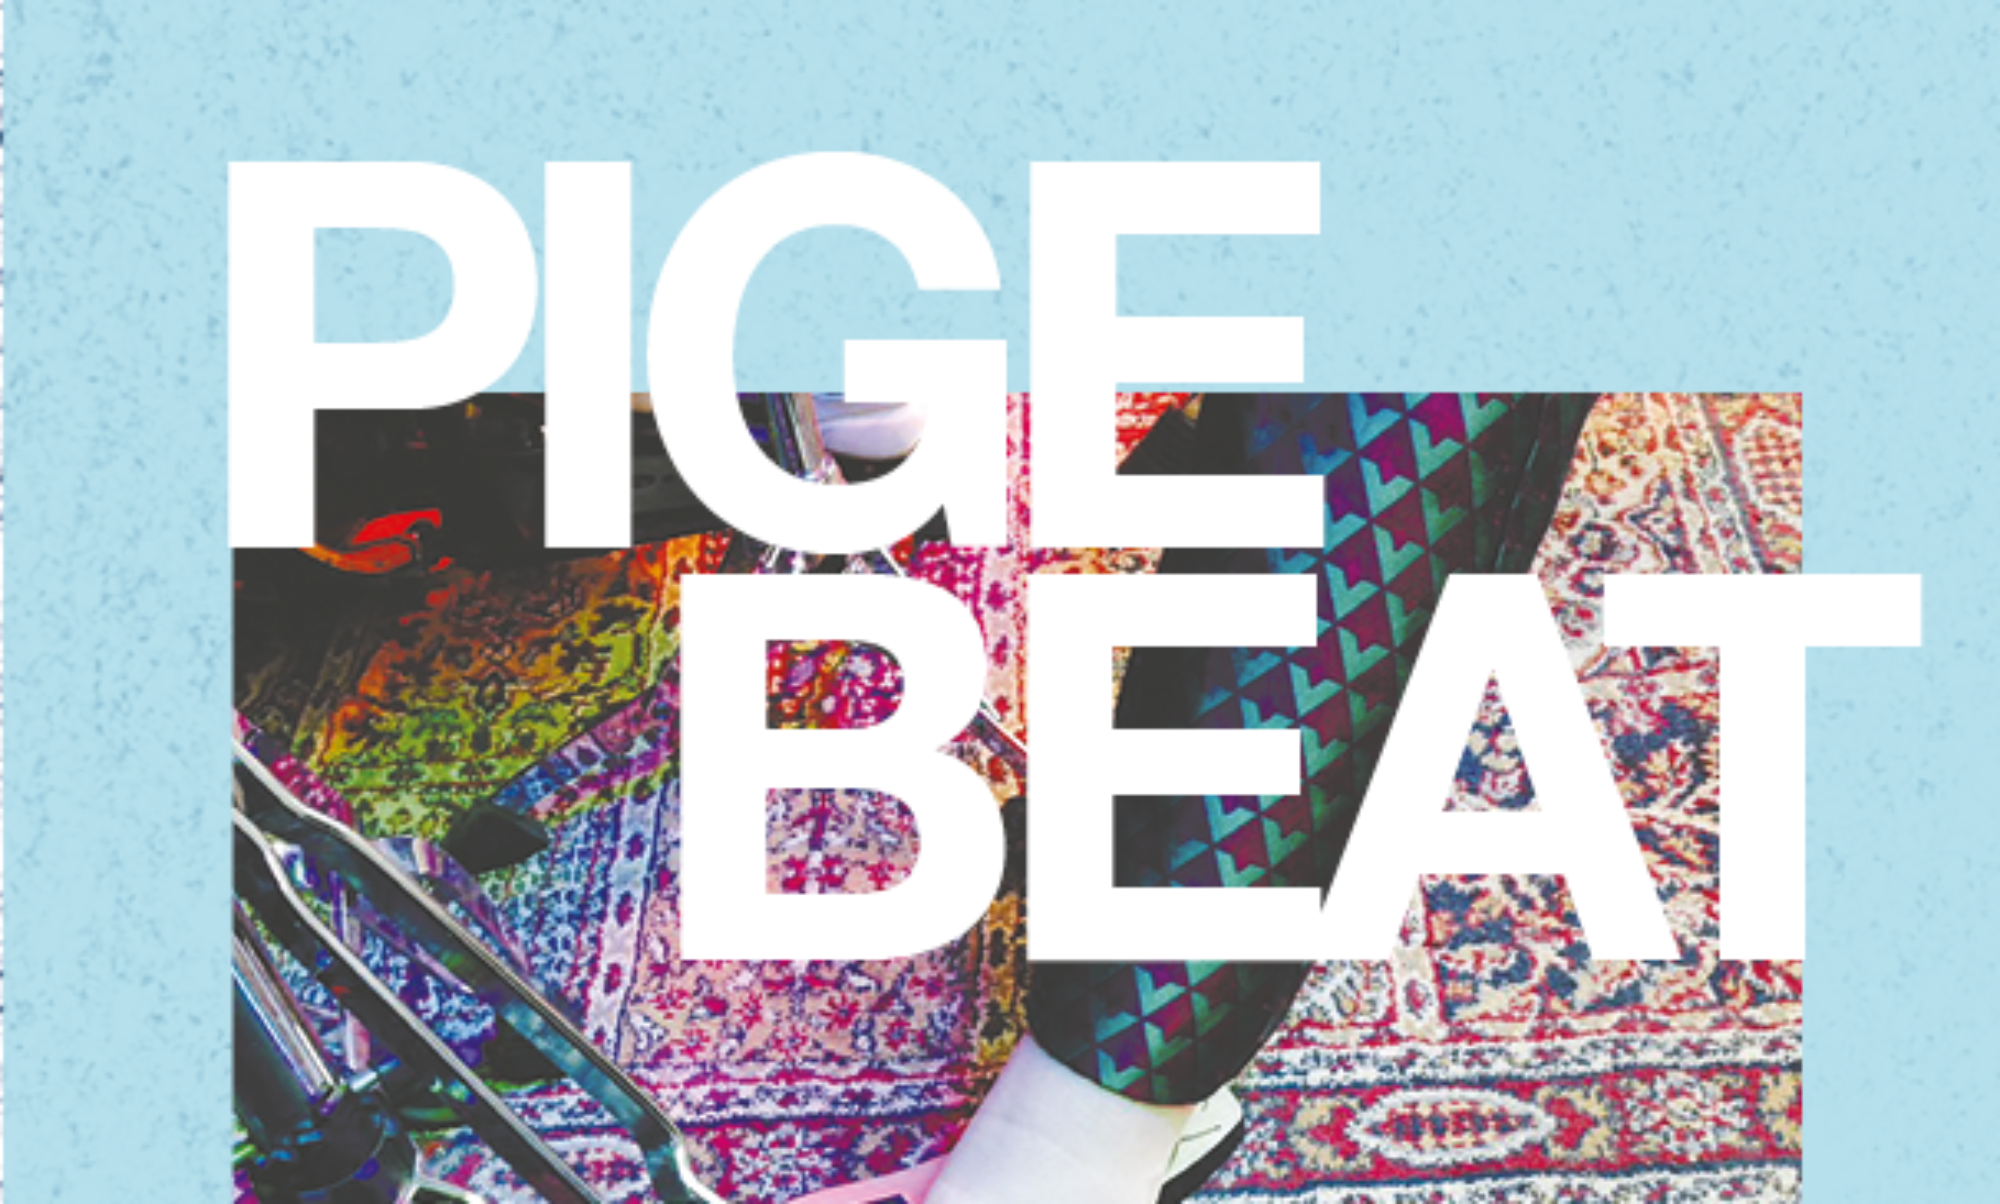 cropped pigeBEAT 2019 facebook cover image